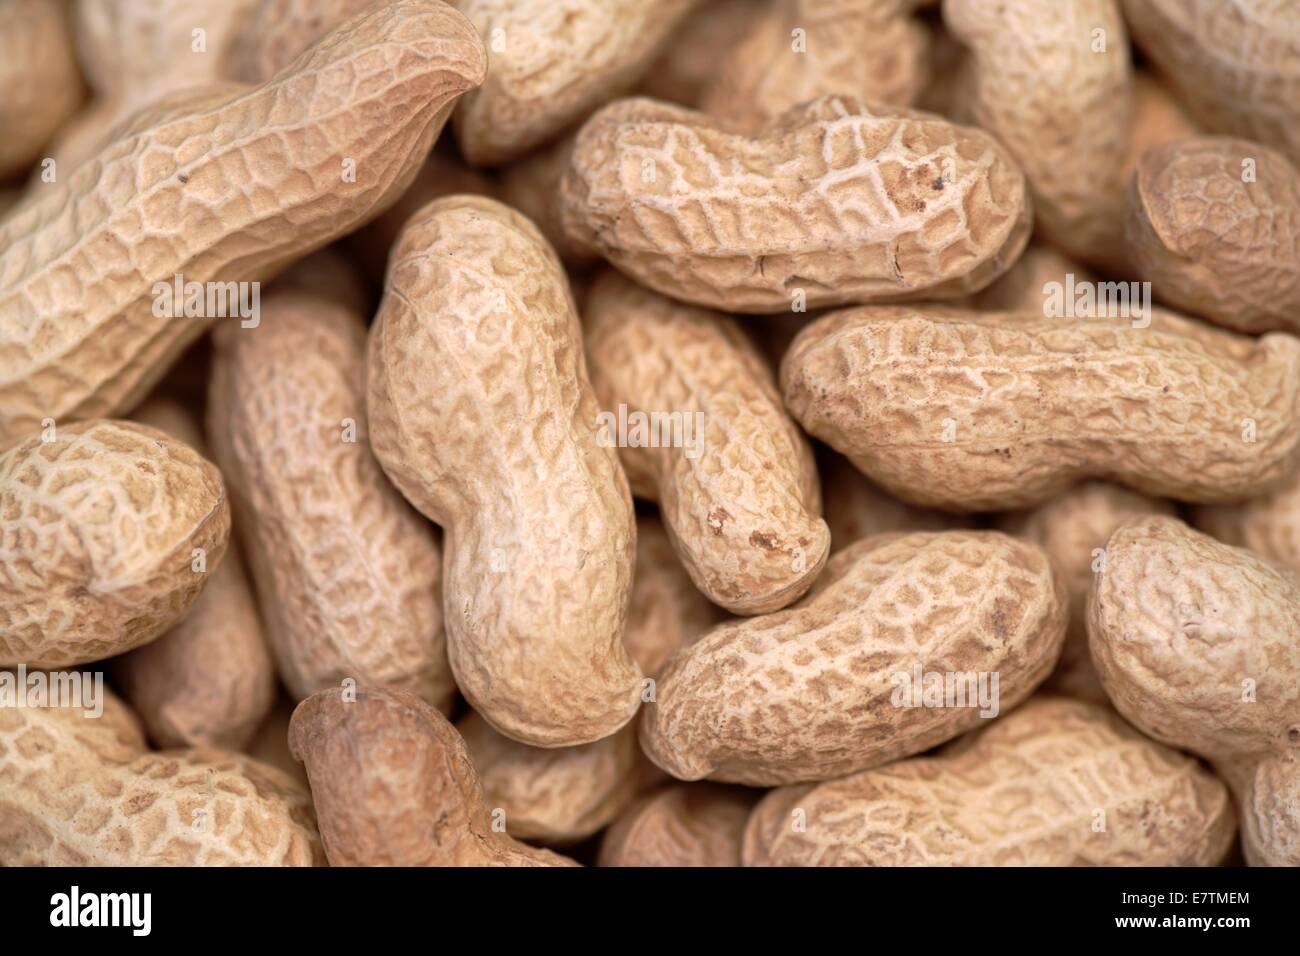 Monkey Nuts (Arachis Hypogaea). Stockbild